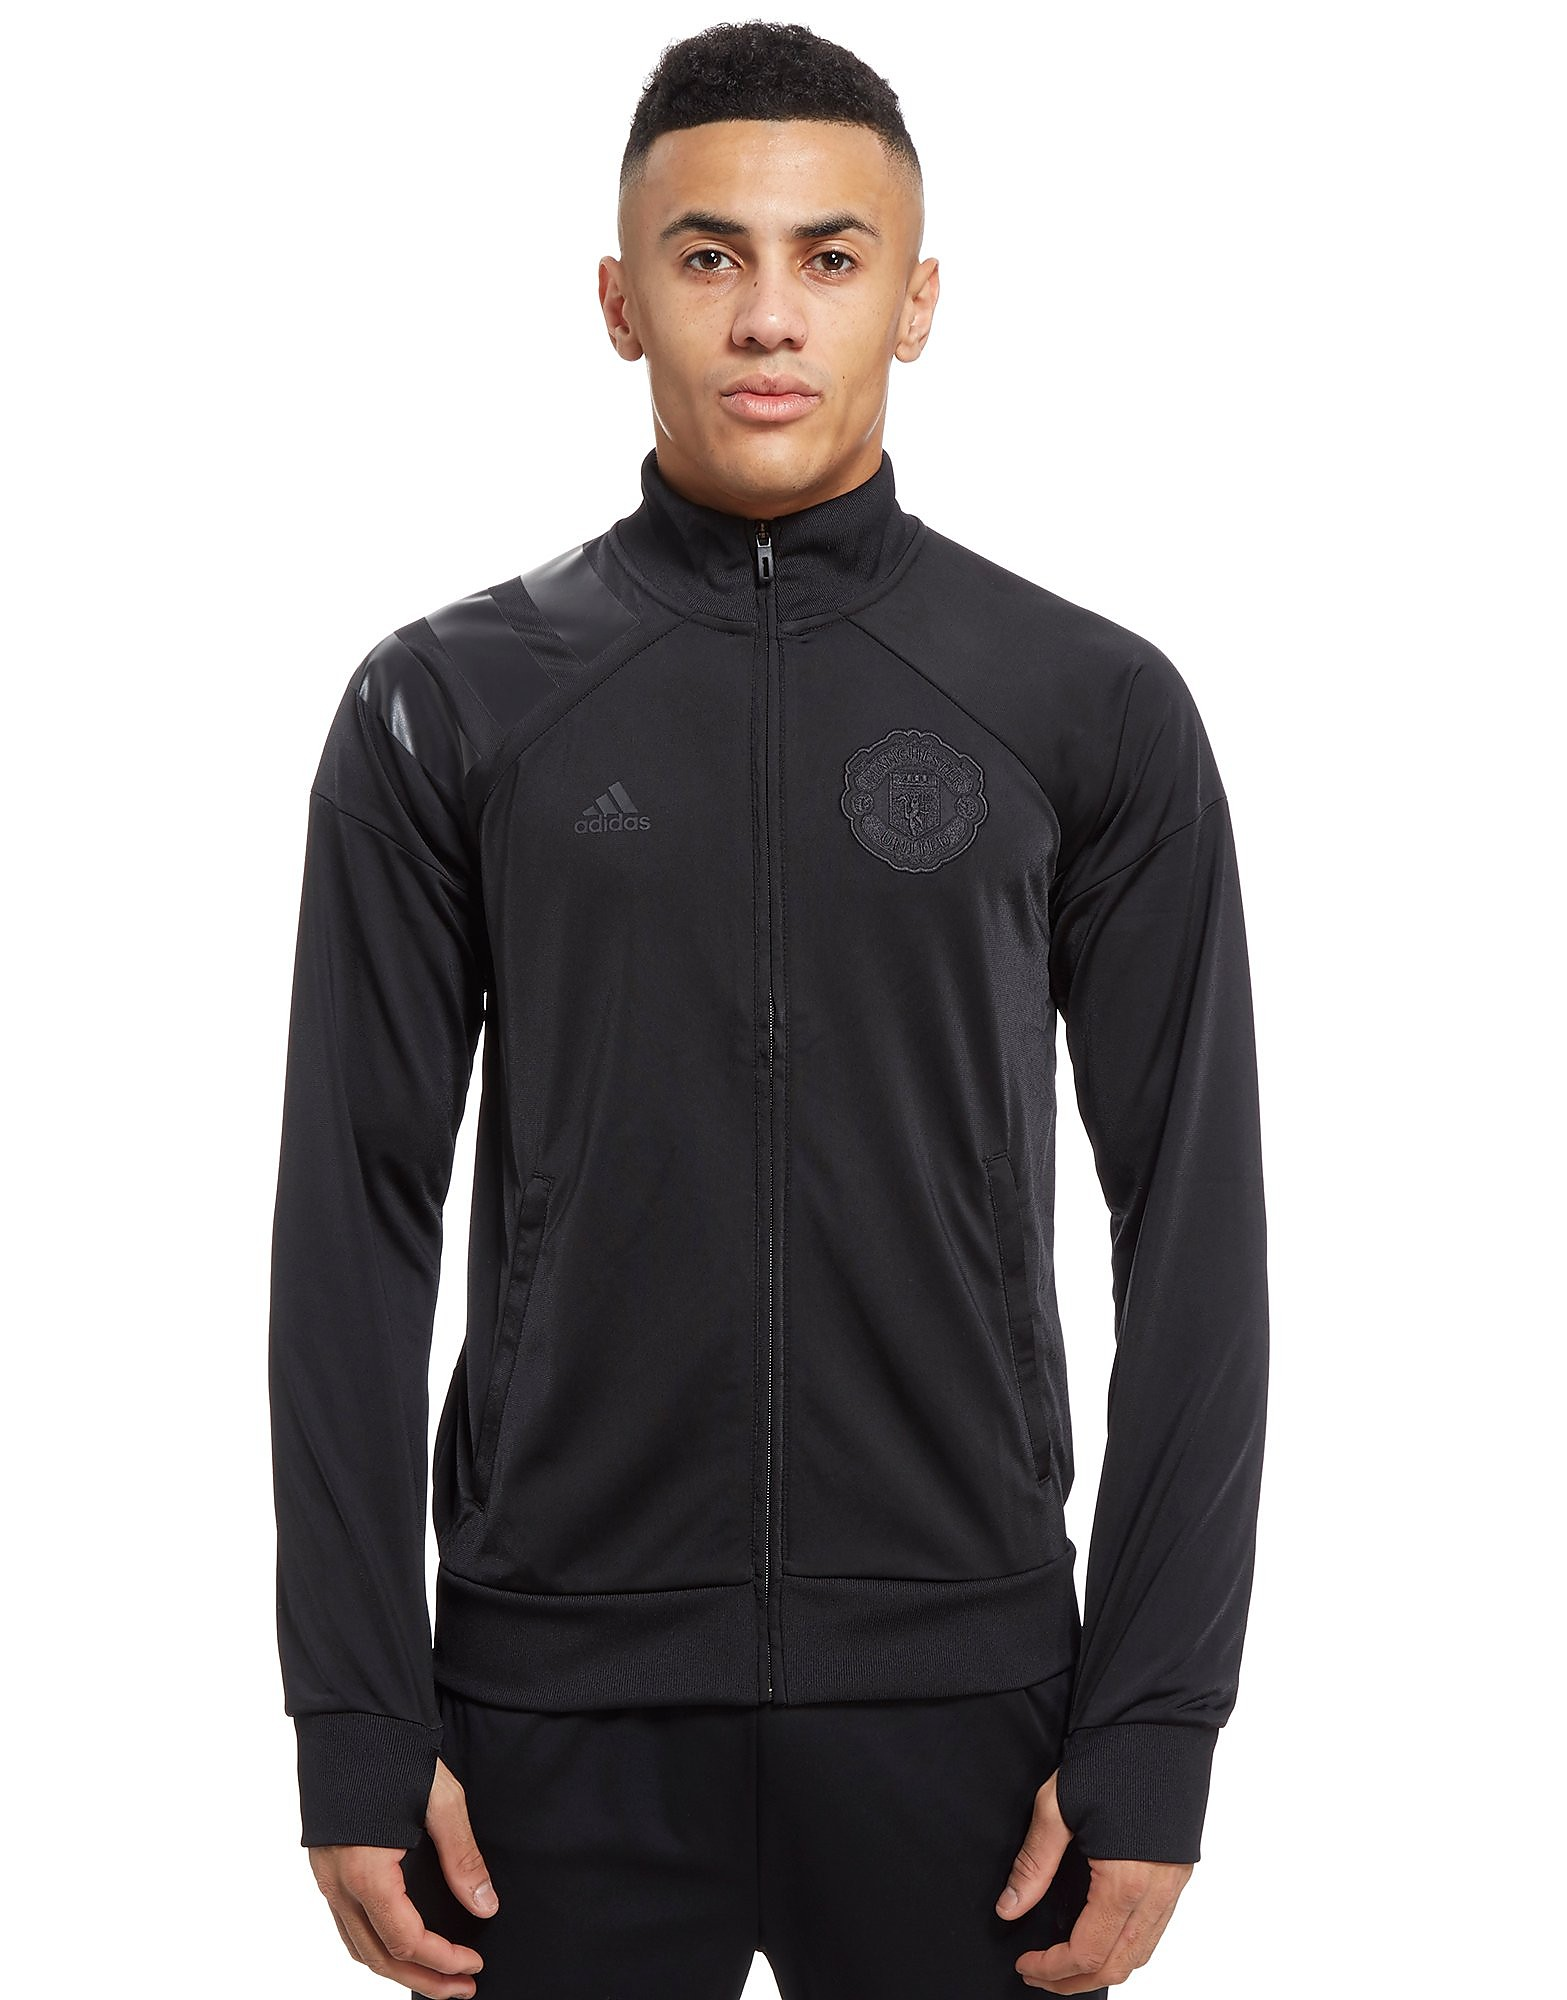 adidas Manchester United 2017 Seasonal Specials Track Top